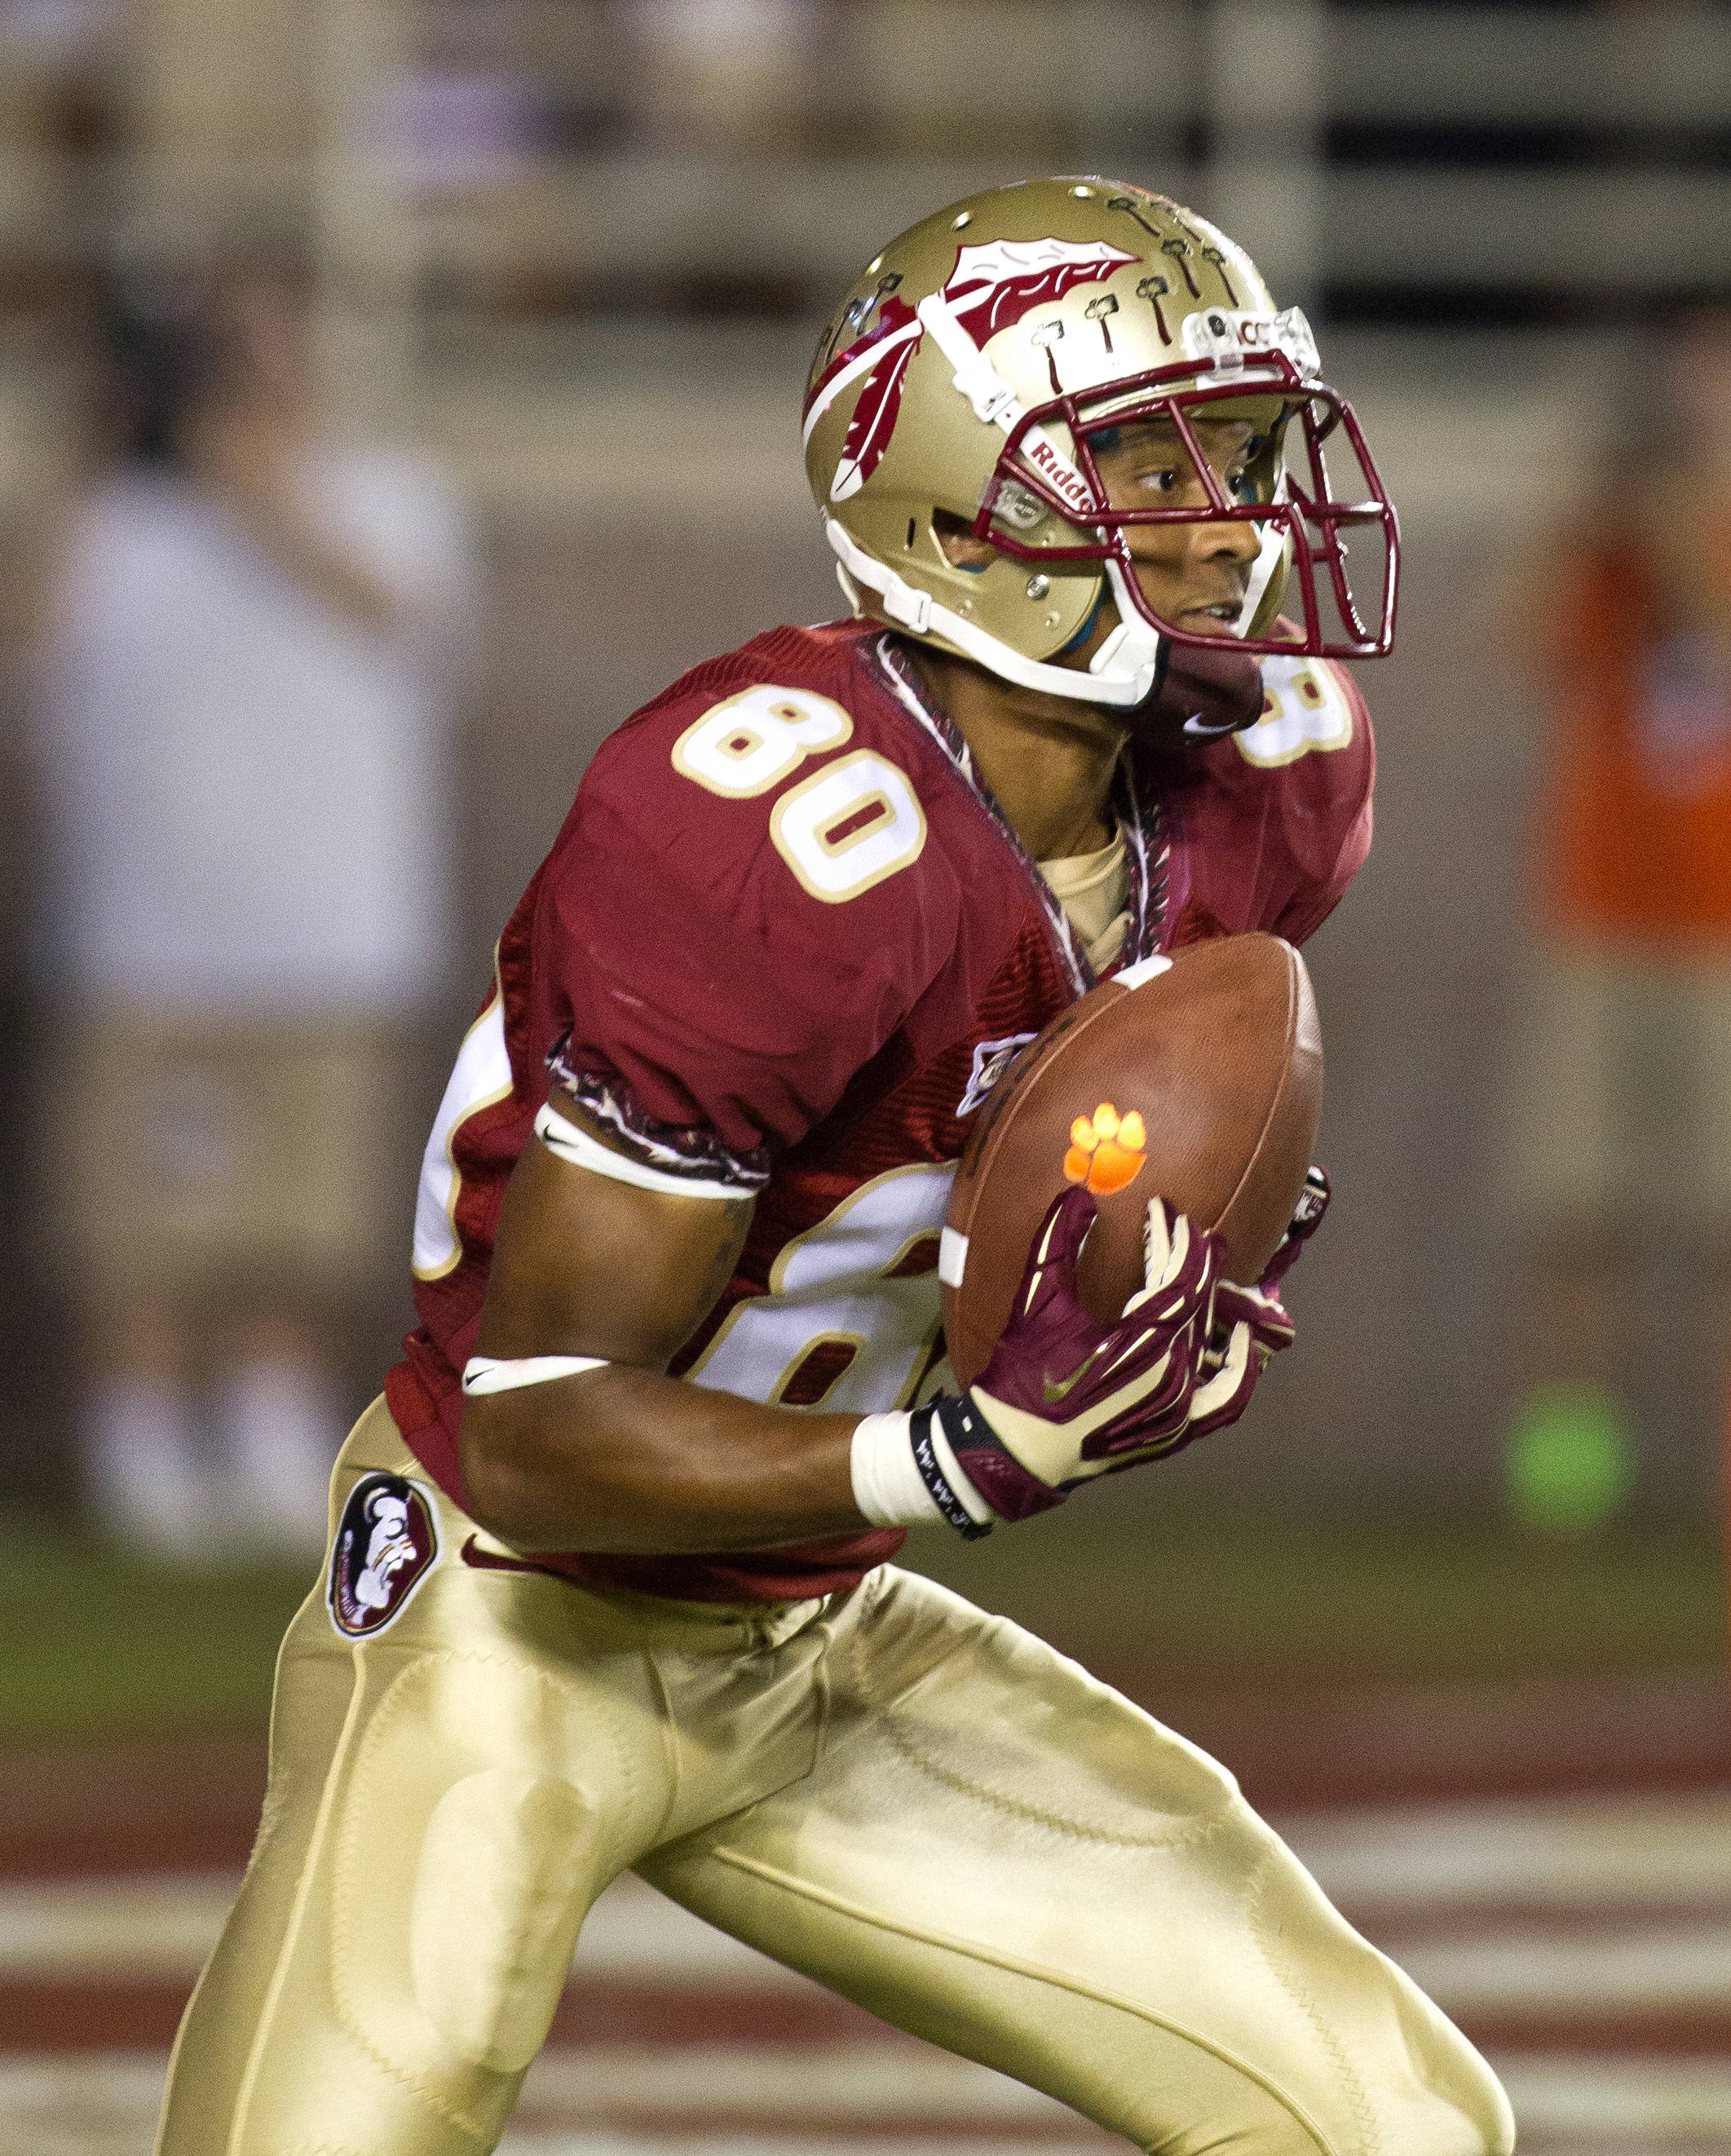 Rashad Greene (80) looking for an opening, FSU vs Clemson, 9/22/12 (Photo by Steve Musco)